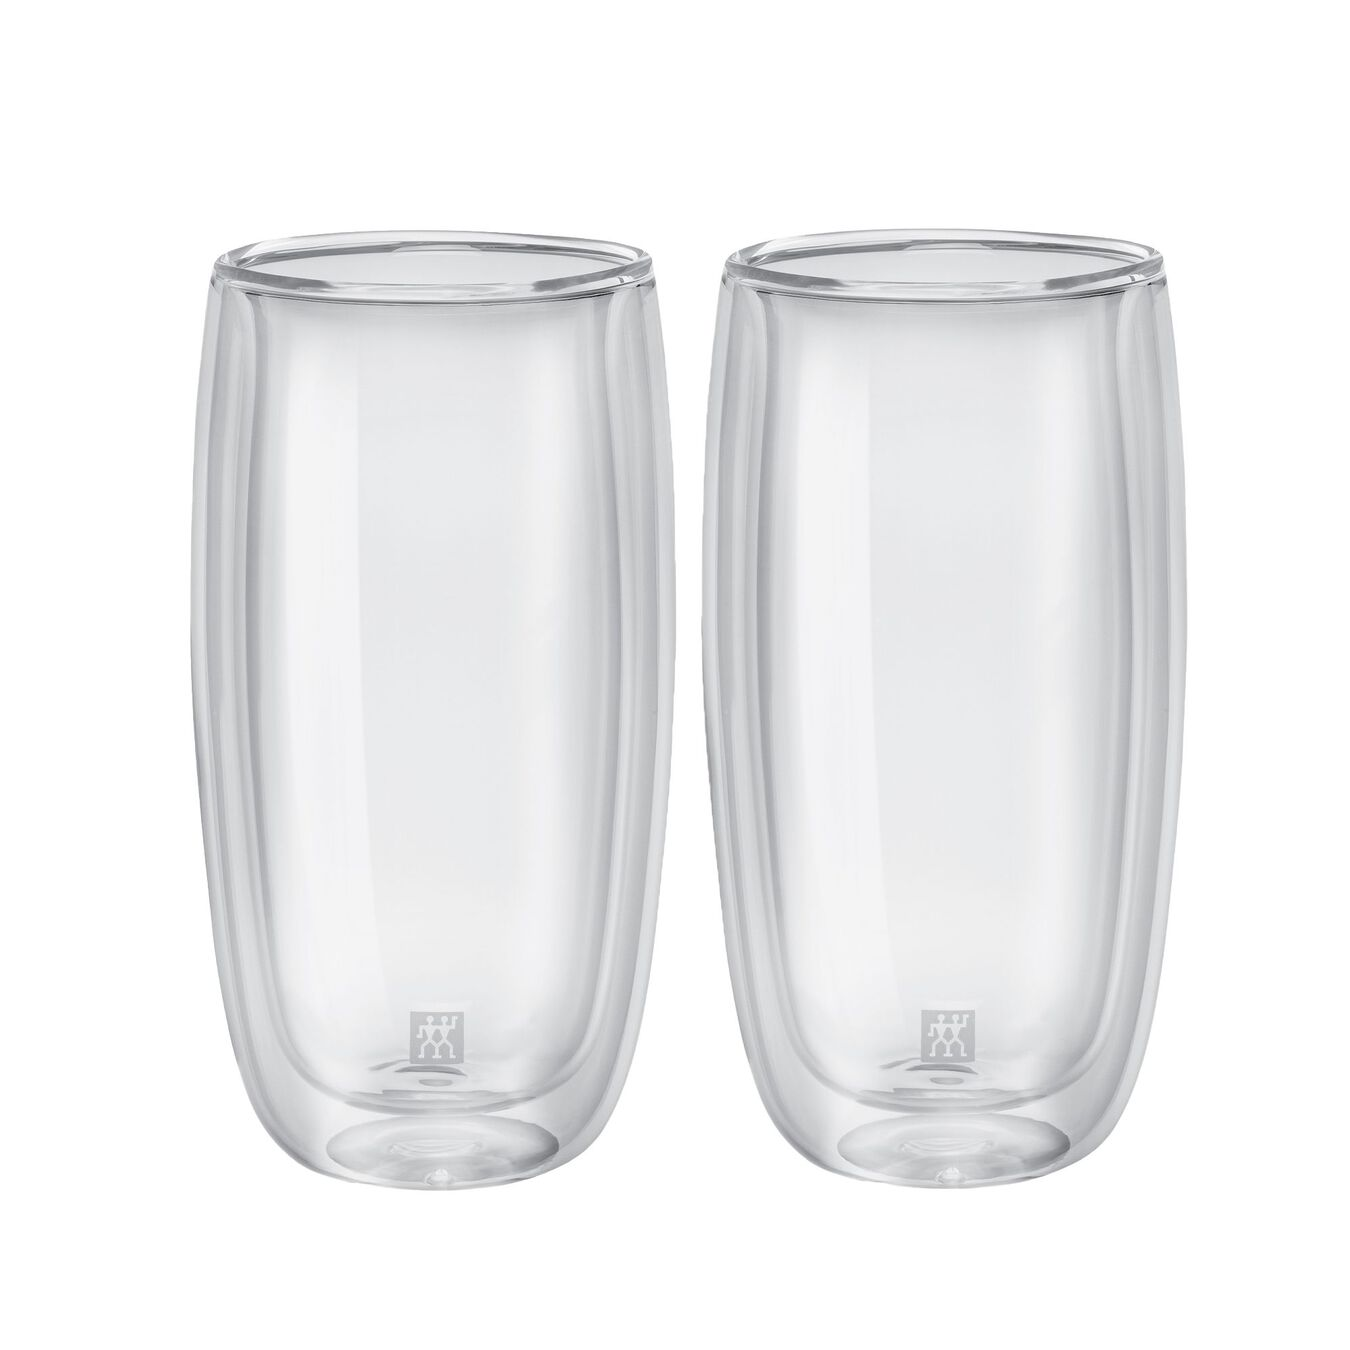 2 Piece Double-Wall Beverage Glass Set,,large 1